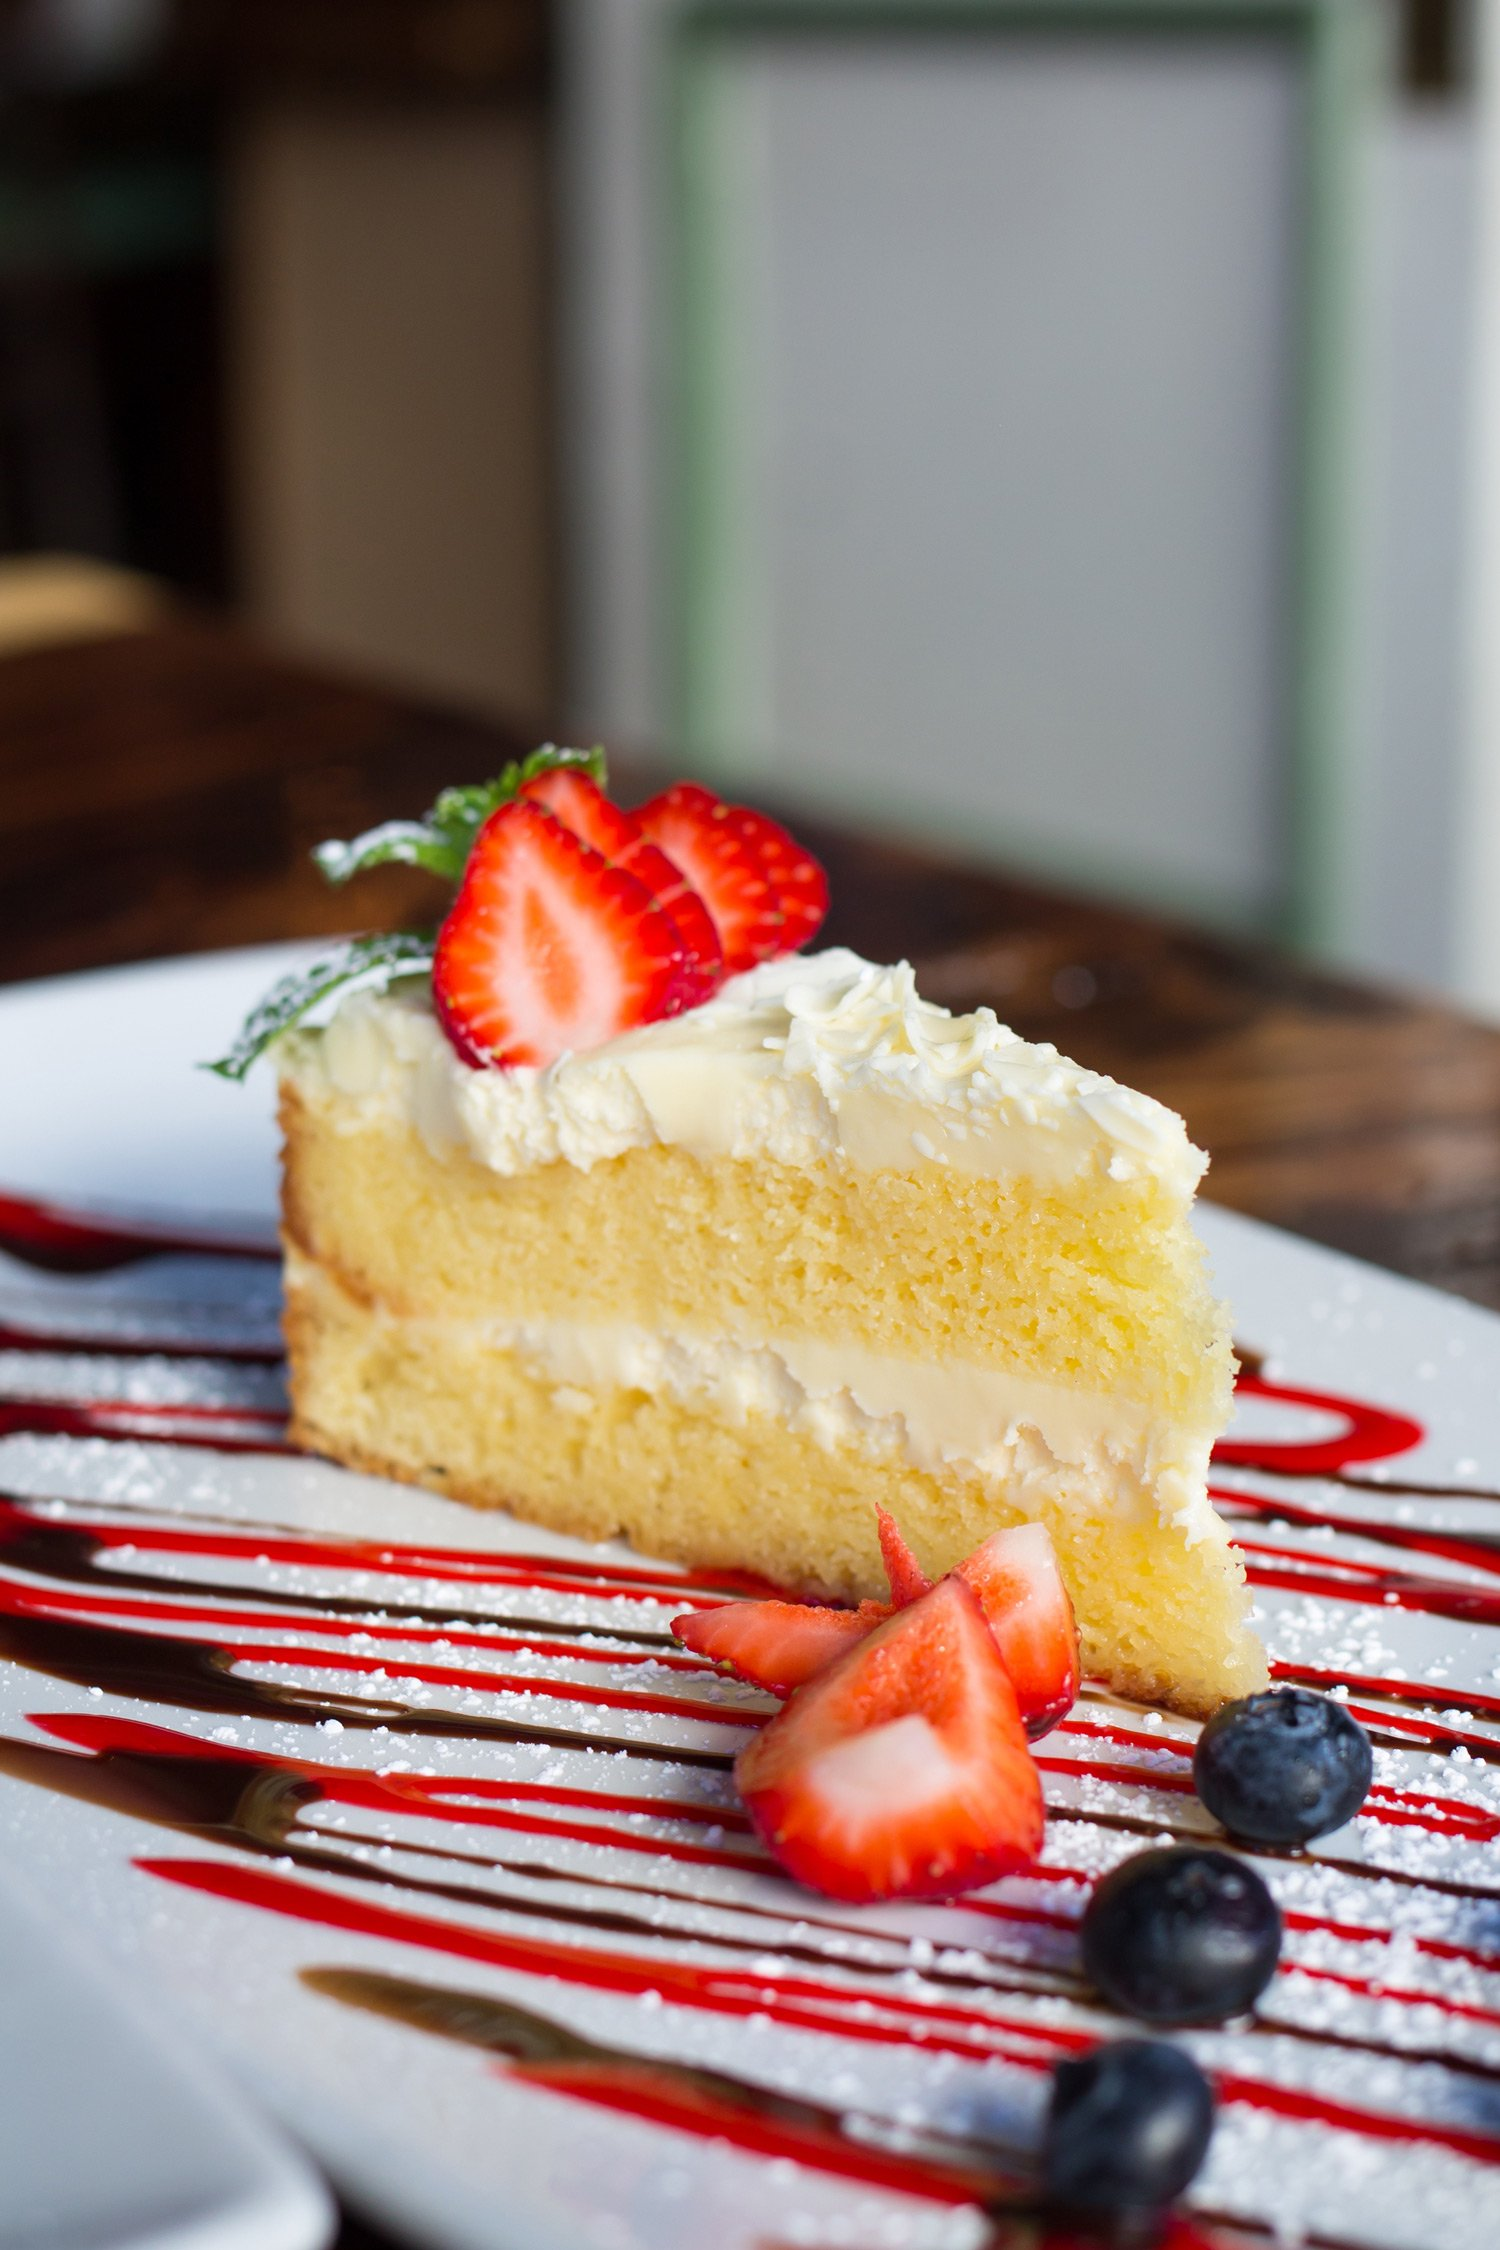 Limoncello Cake with strawberries on top.